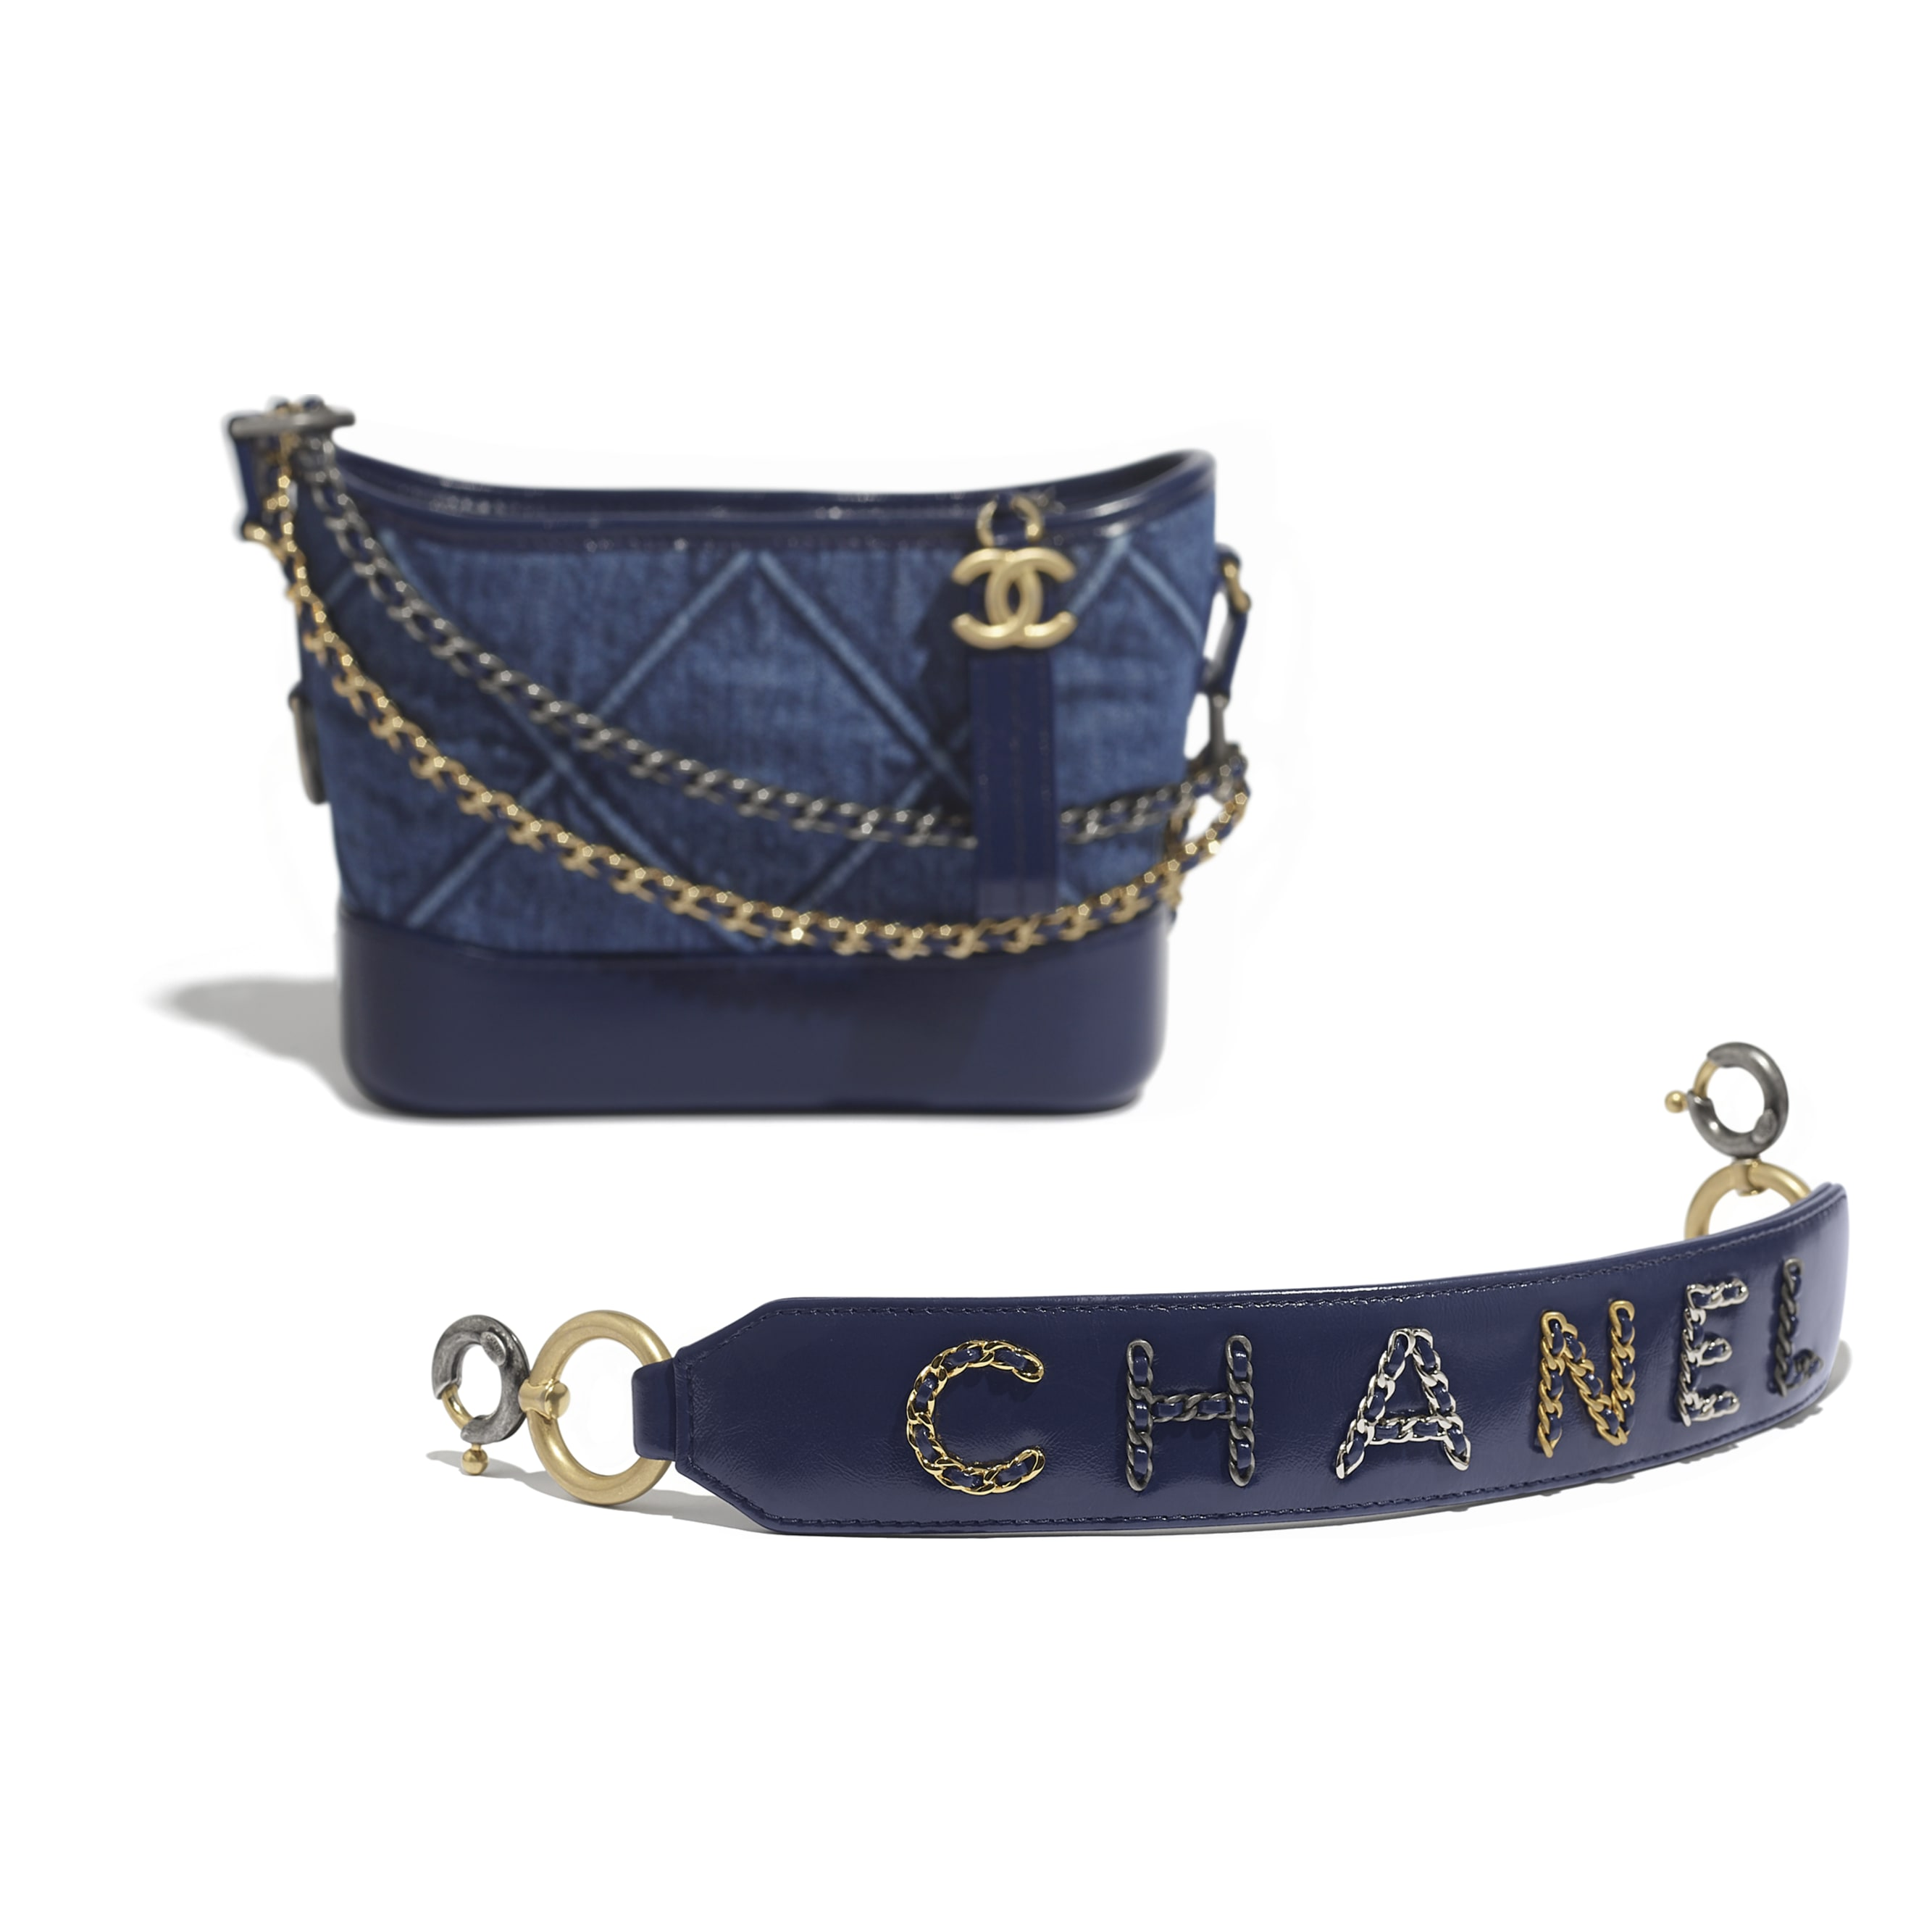 CHANEL'S GABRIELLE Small Hobo Bag - Blue - Denim, Calfskin, Gold-Tone, Silver-Tone & Ruthenium-Finish Metal - Extra view - see standard sized version